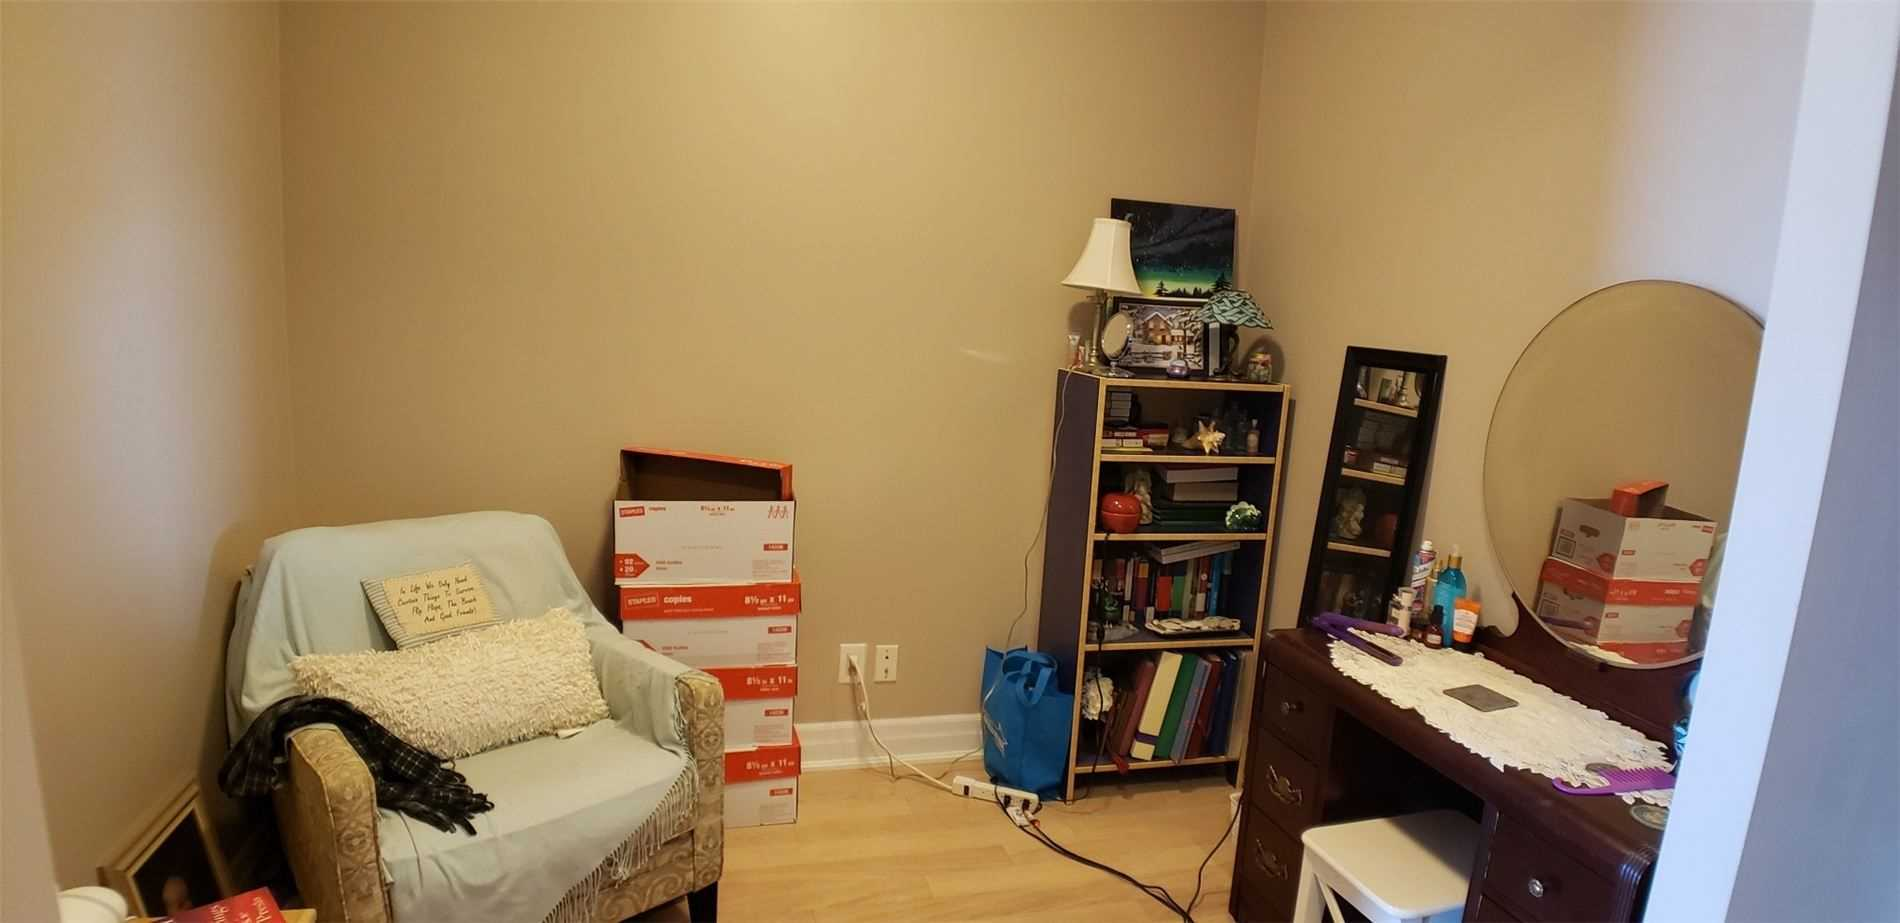 Image 7 of 15 showing inside of 1 Bedroom Condo Apt Apartment for Sale at 100 John St Unit# 803, Brampton L6W0A8